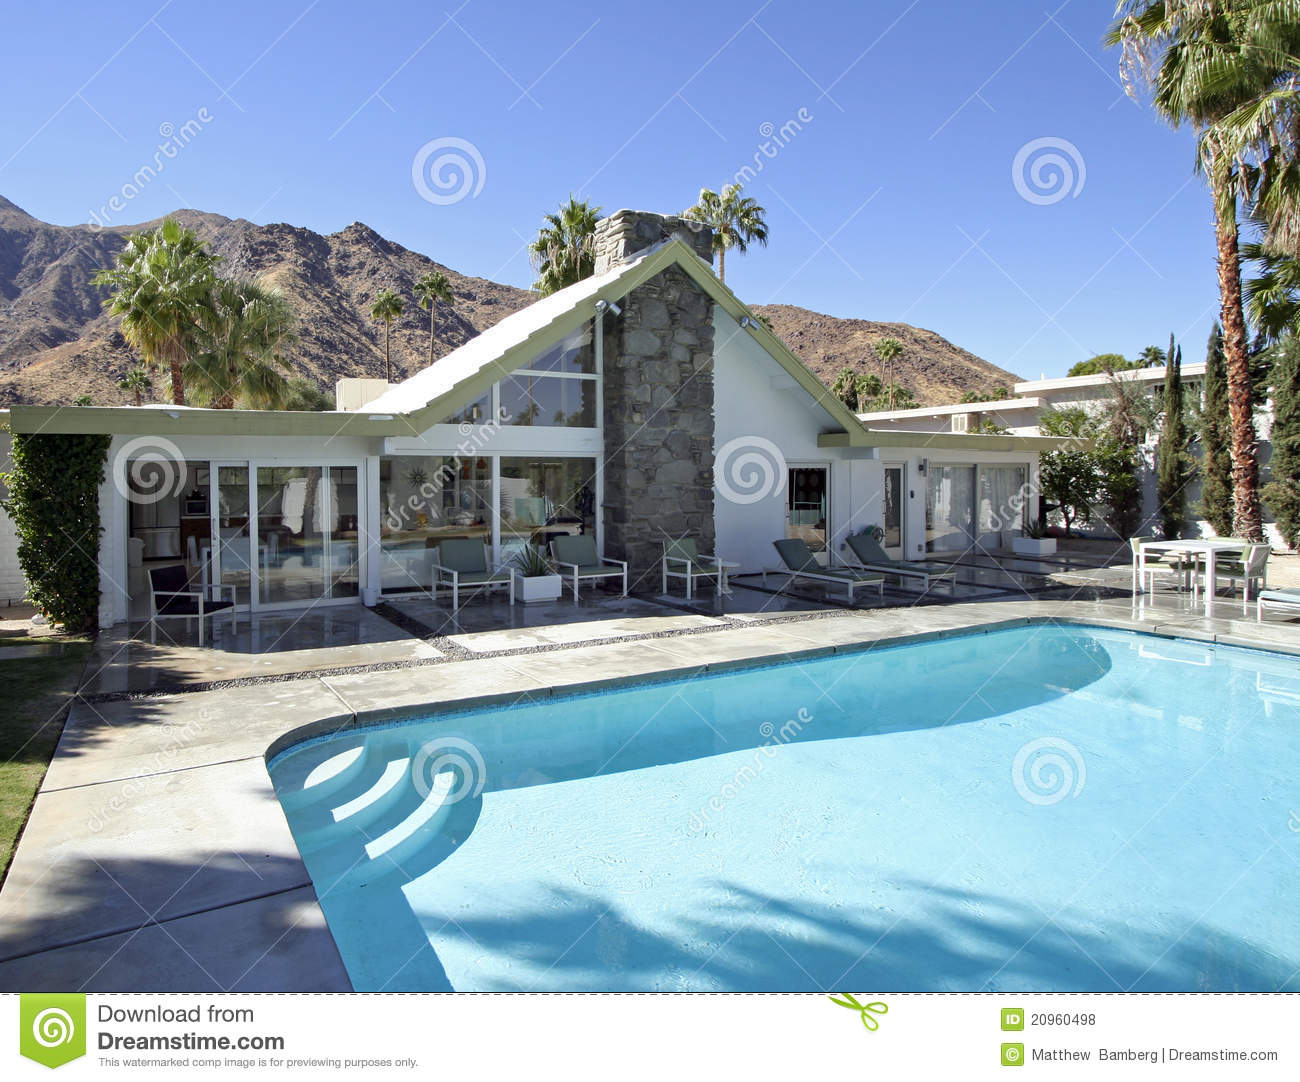 Zwitserse Misser House Pool